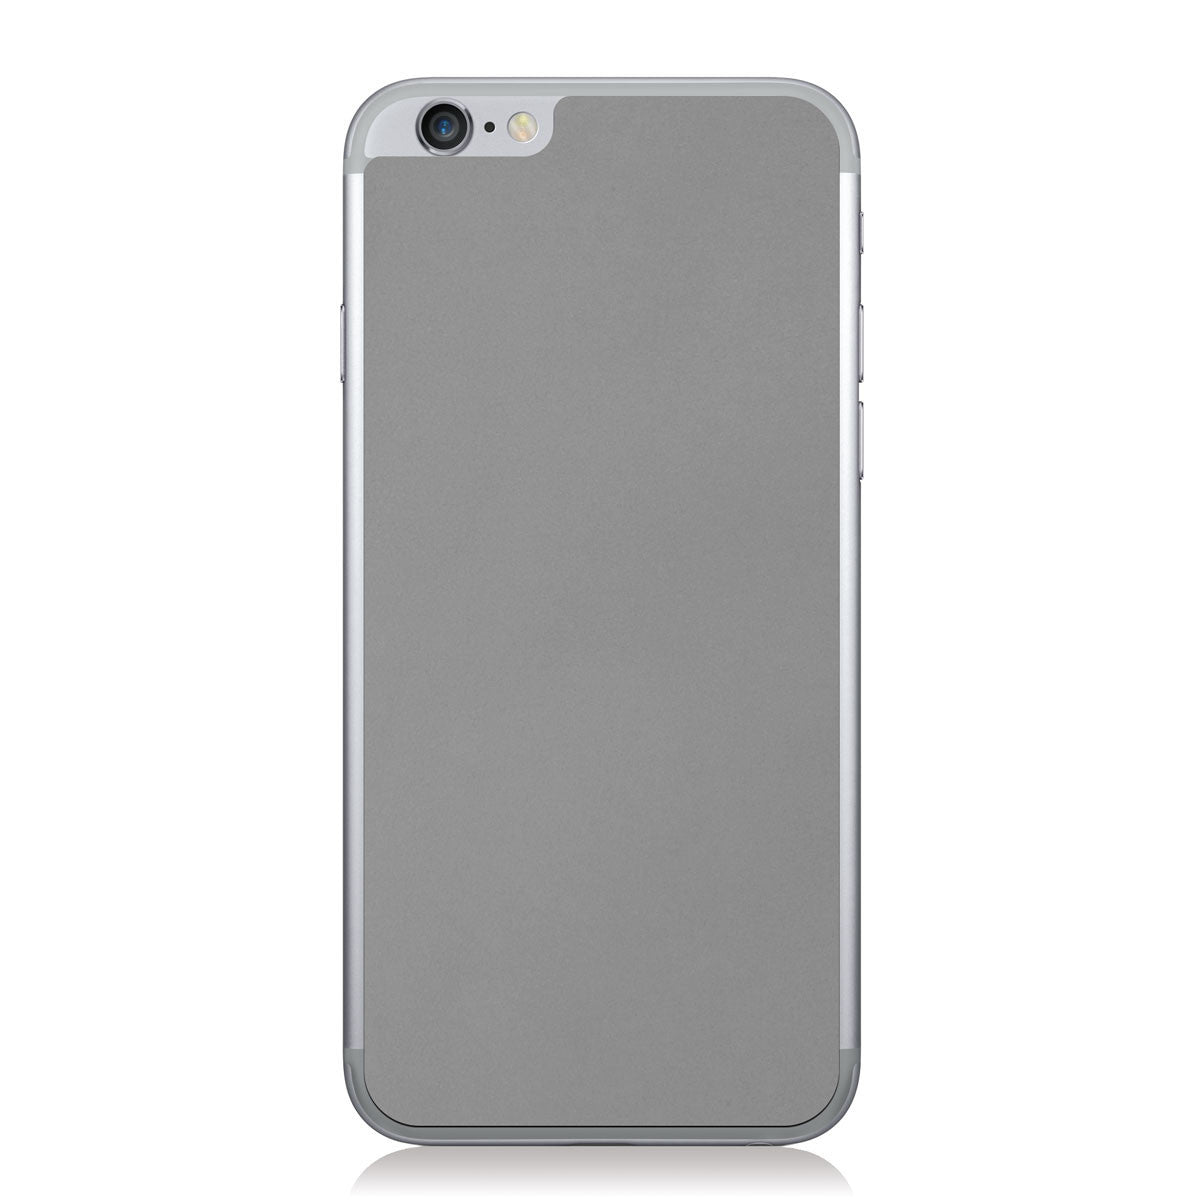 Gray iPhone 6/6s Leather Skin